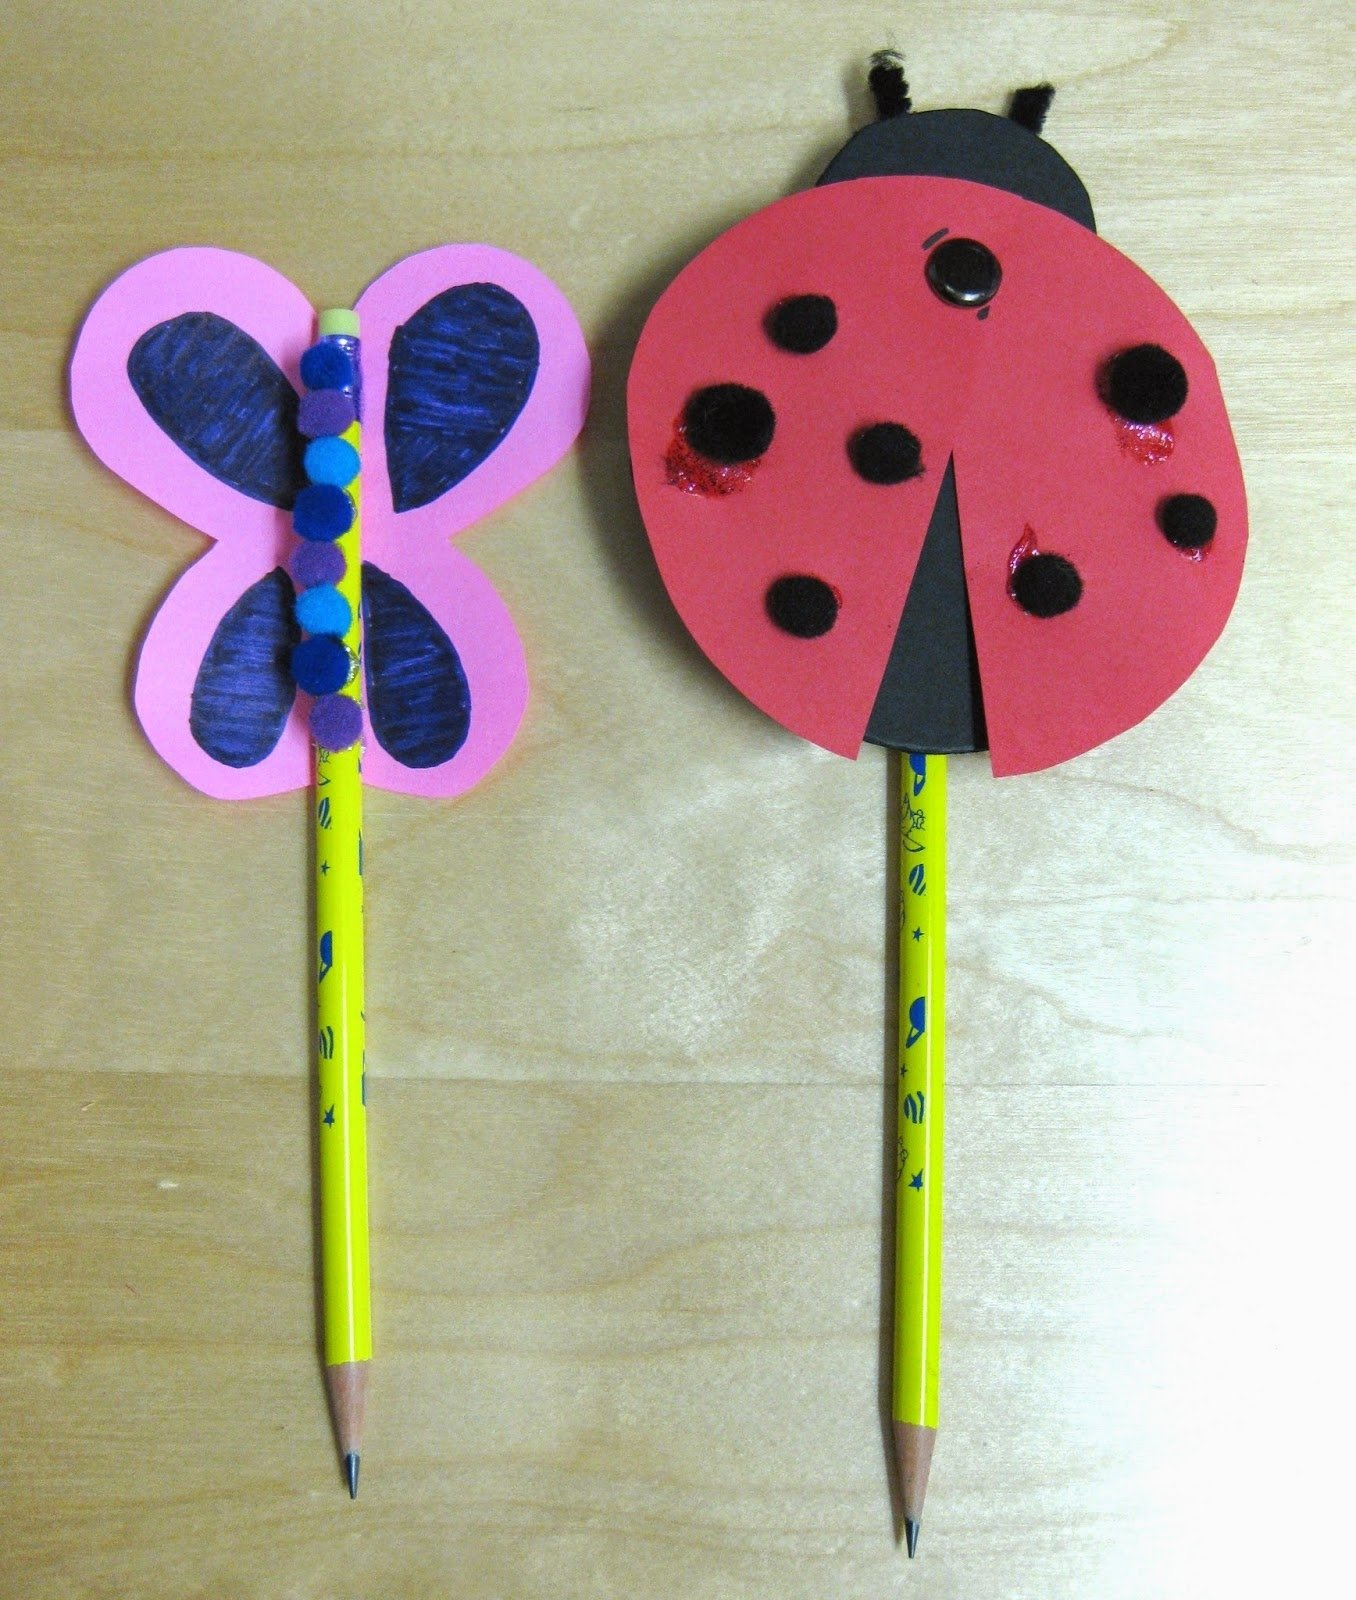 10 Perfect Easy Craft Ideas For Kids pencil craft ideas for kids easy crafts ideas to make 2020